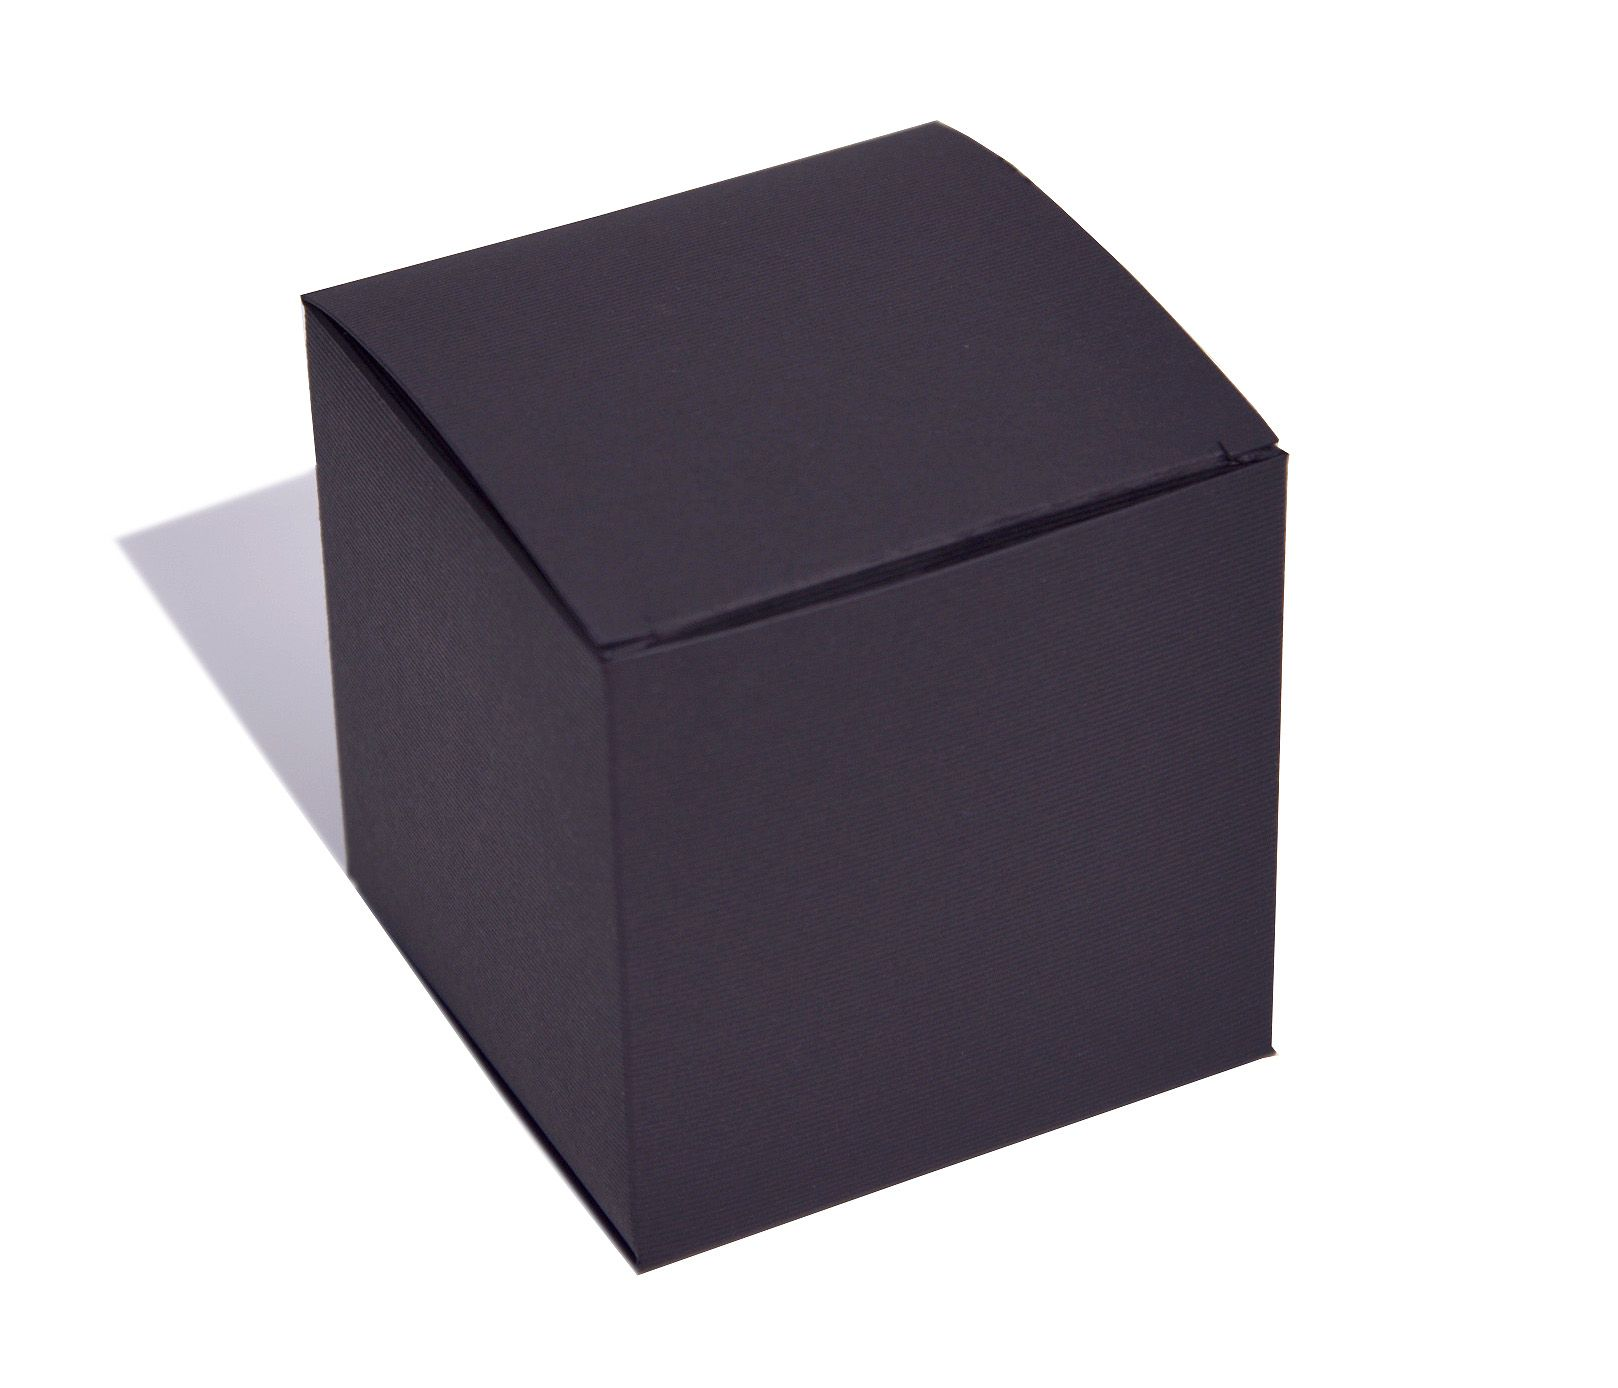 Black Ribbed Flatpack Box 50 x 50 x 50mm BLRIB50 httpwww